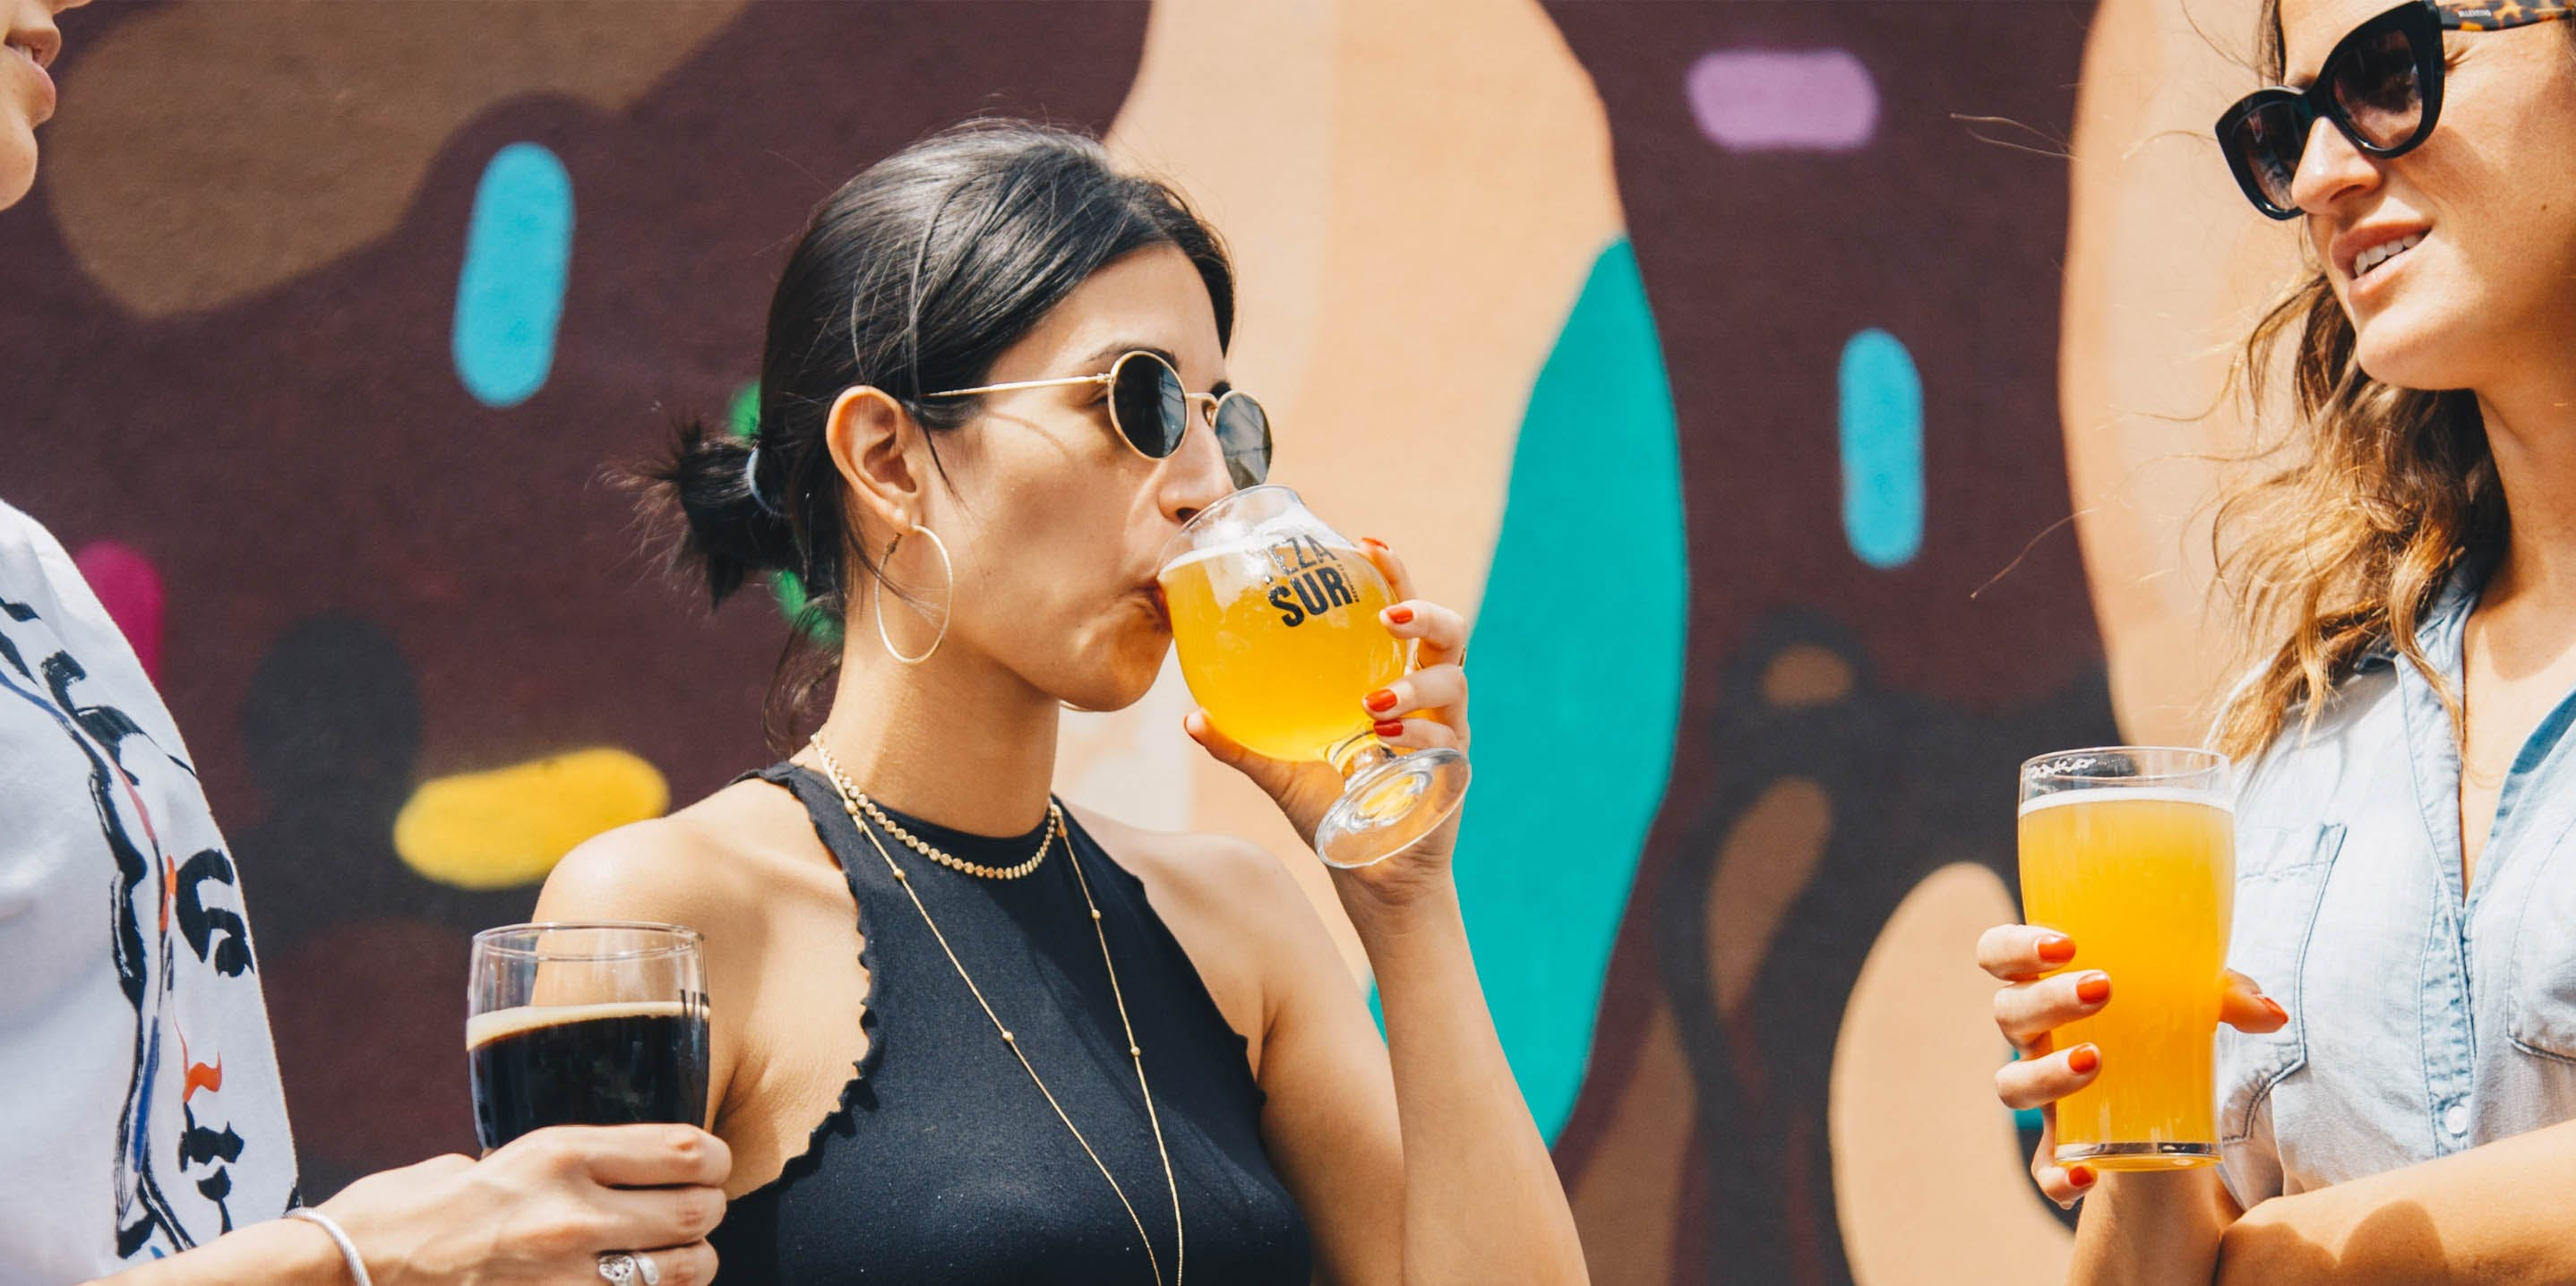 The Top 5 Cannabis Strains for Hangover Symptoms. Here, women are shown drinking beer